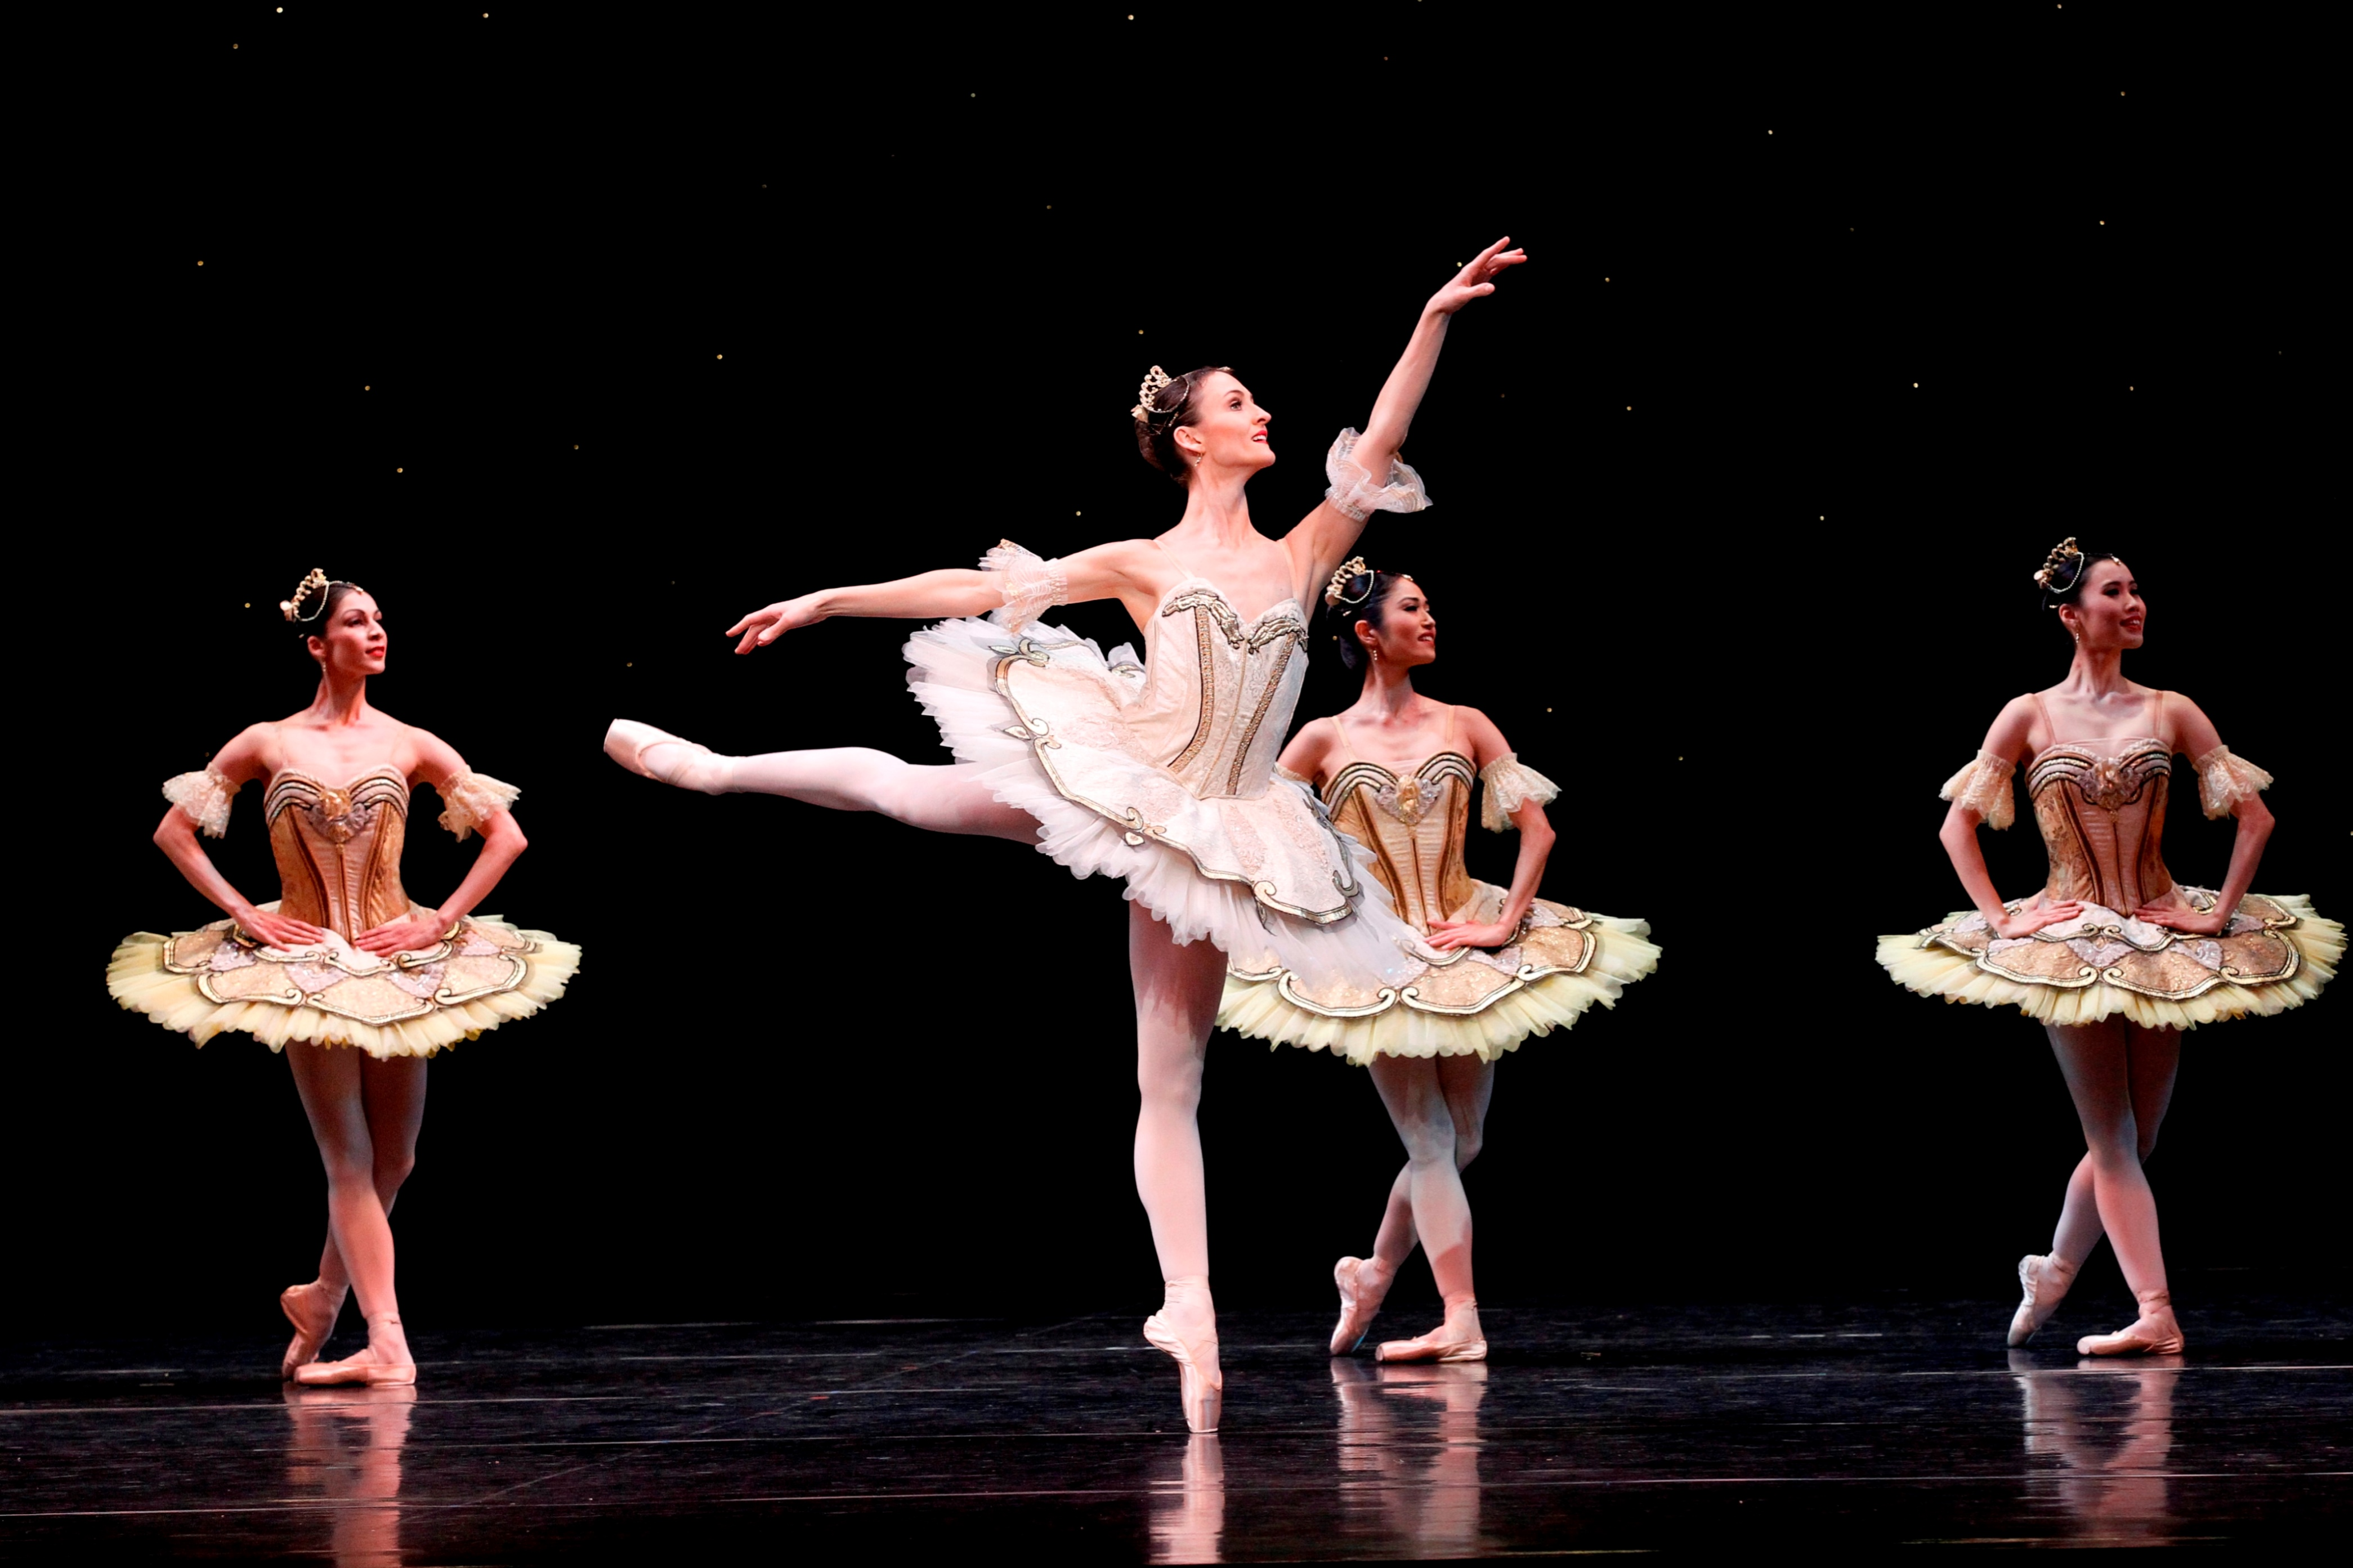 the la sylphides story essay American ballet theatre les sylphides, clear, theme and variations new york, david h koch theater 2 november 2013 (matinée) wwwabtorg ballets about ballet.